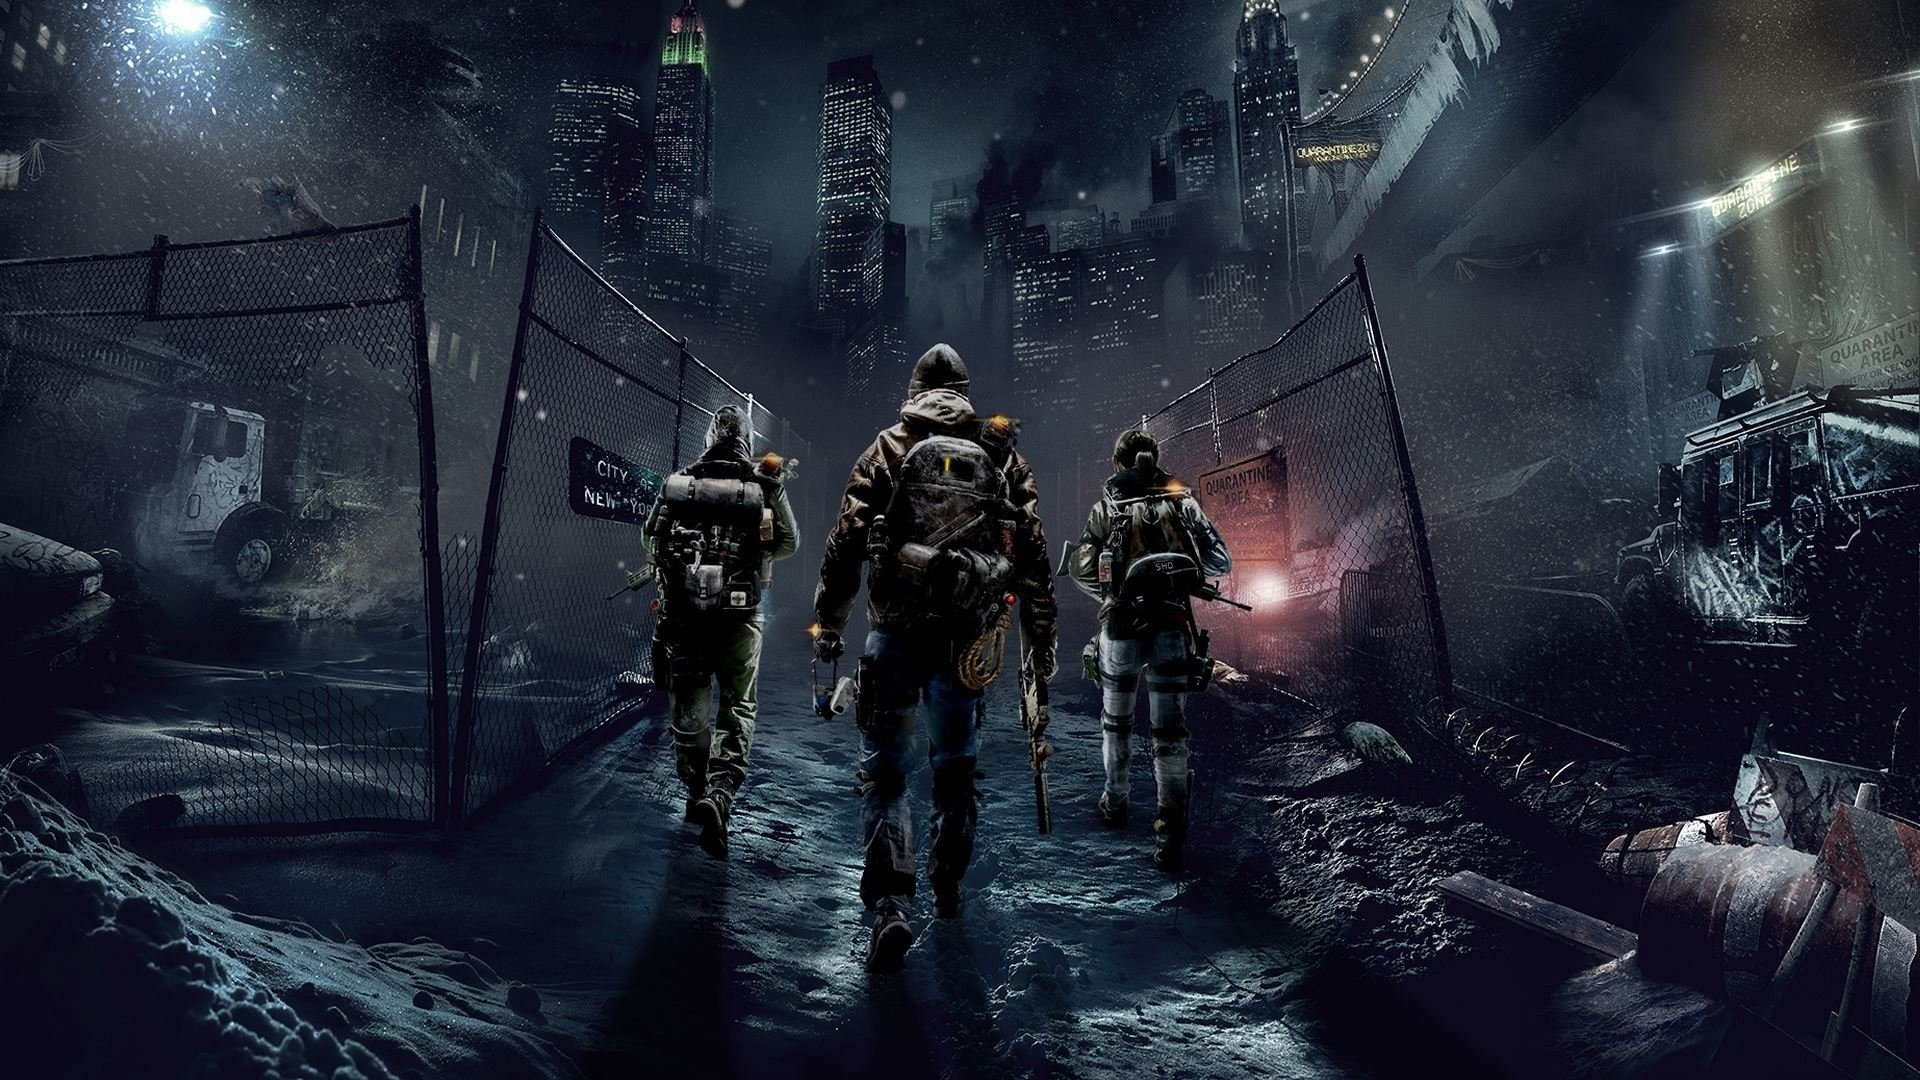 Tom Clancy's The Division HD Wallpaper | Background Image ...